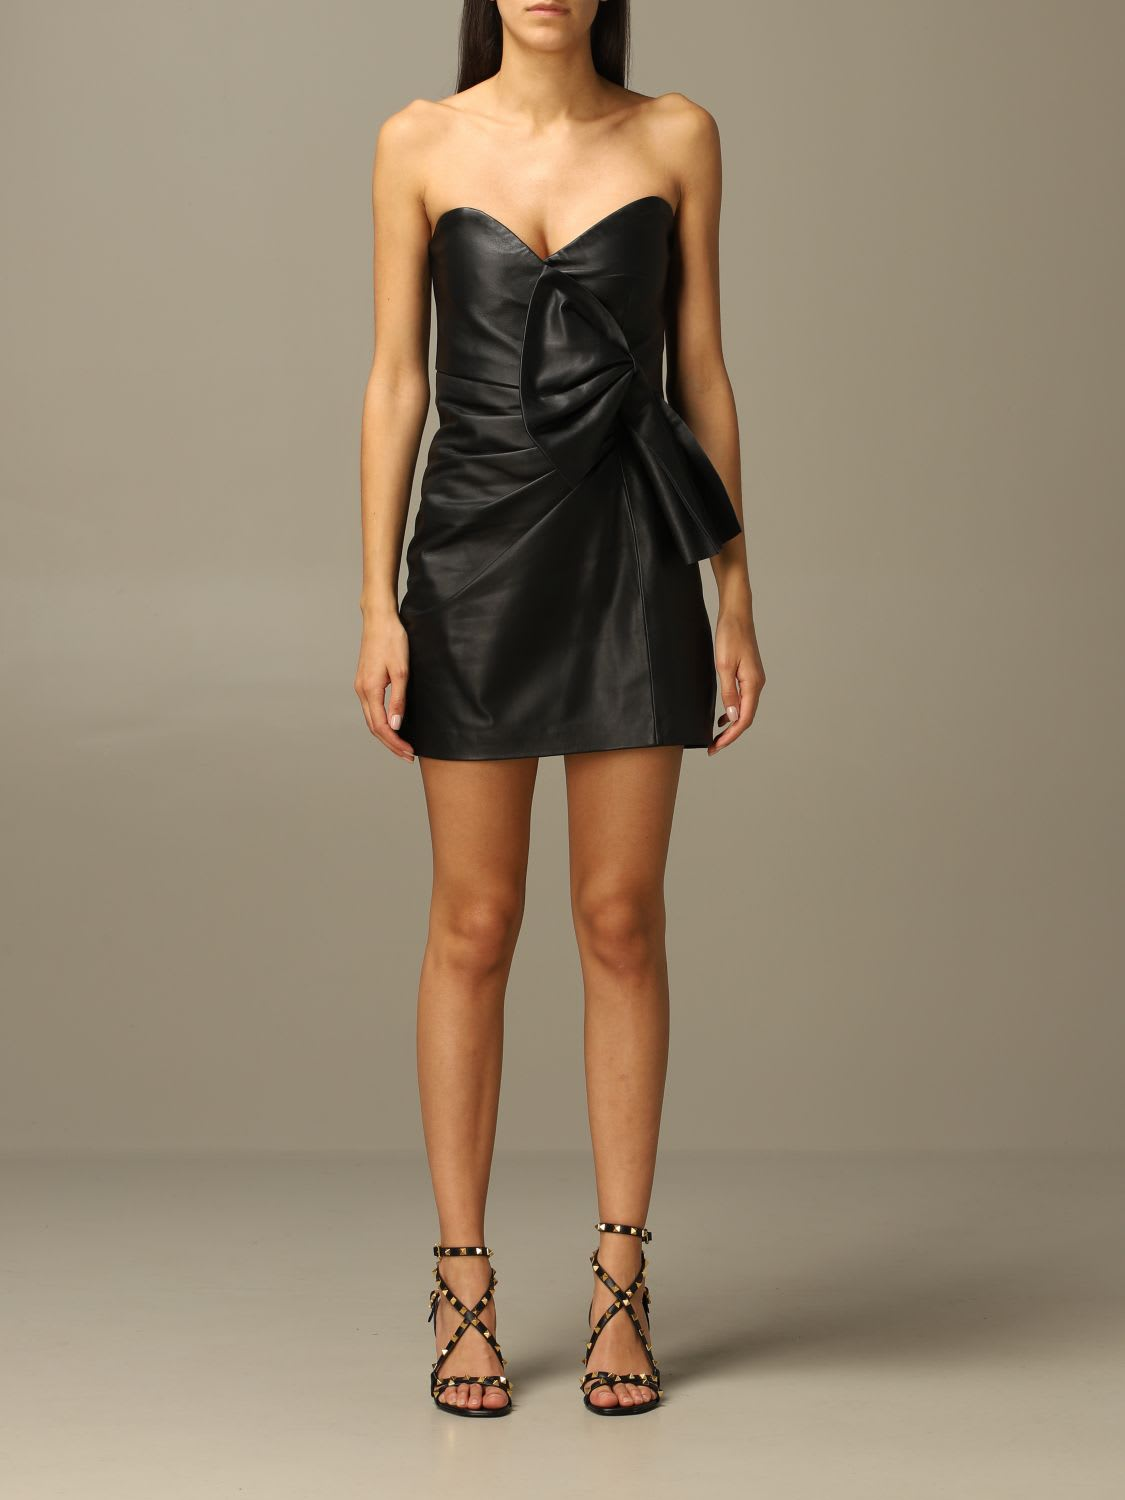 Red Valentino Dress Red Valentino Leather Dress With Big Bow